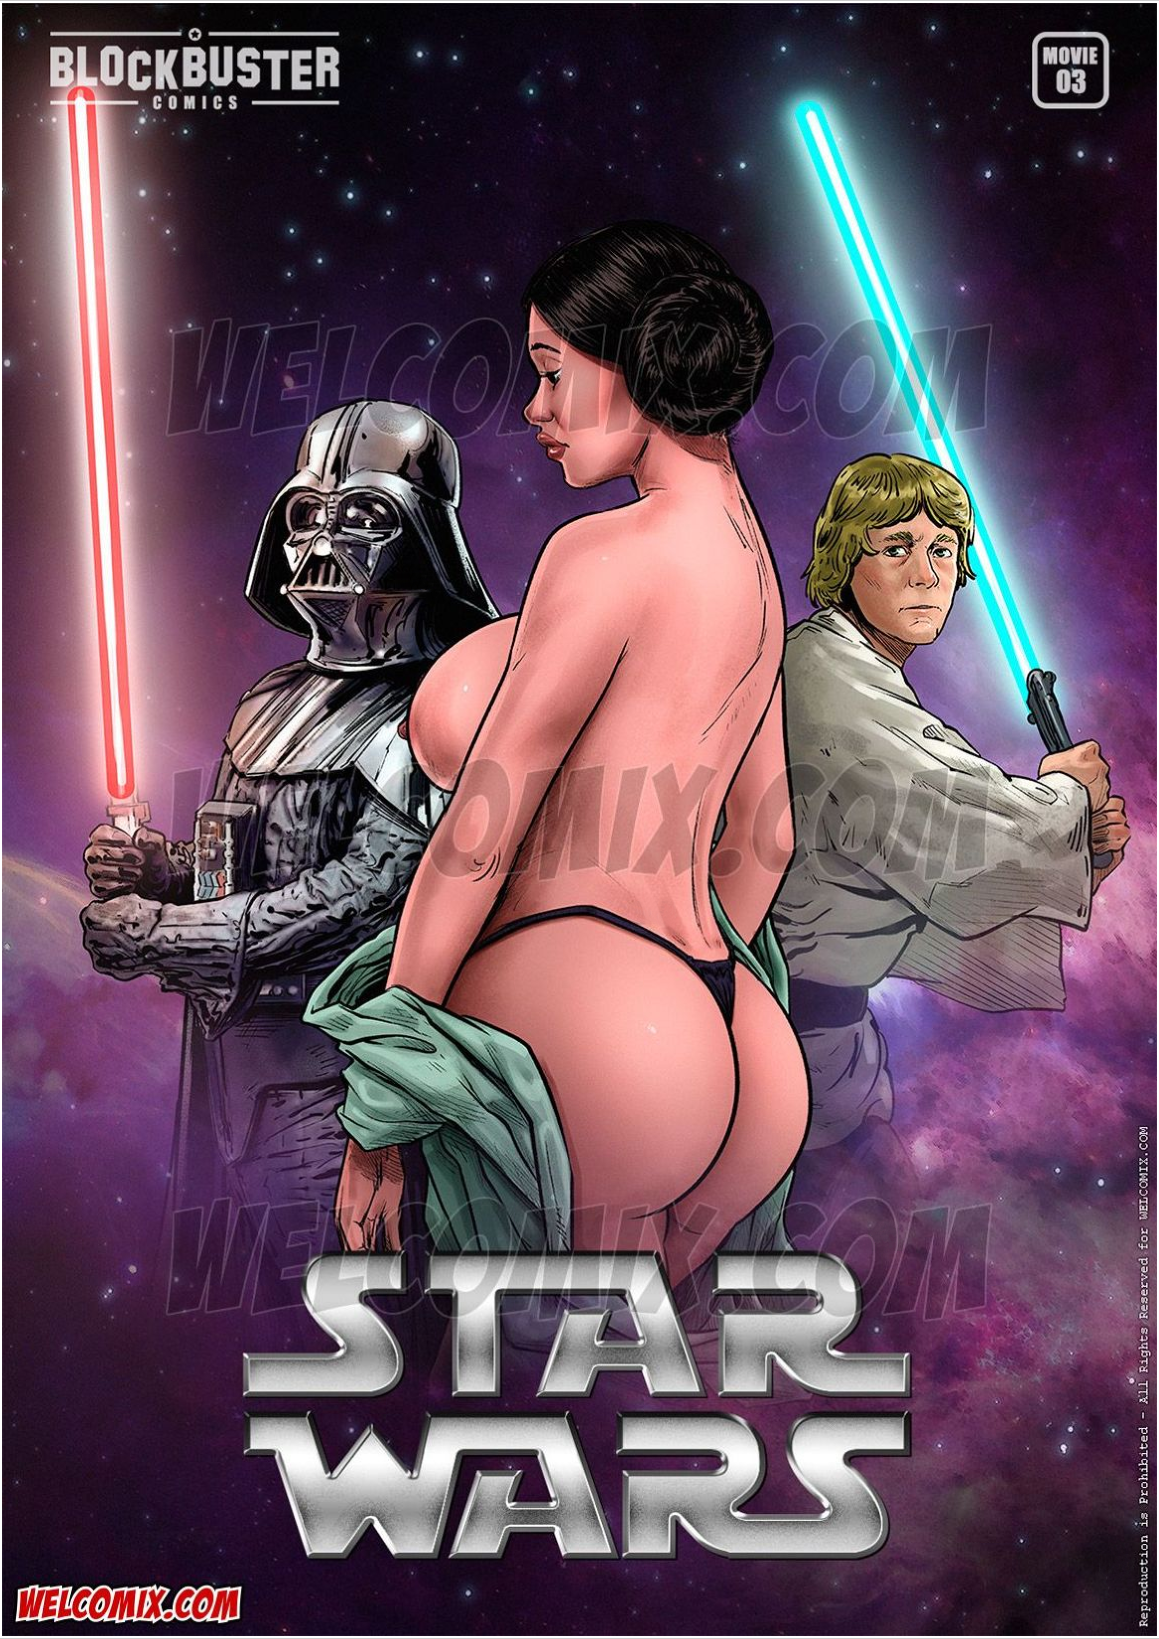 Goodcomix.tk Star Wars - [WelComix] - BlockBuster Comics 03 - Star Wars